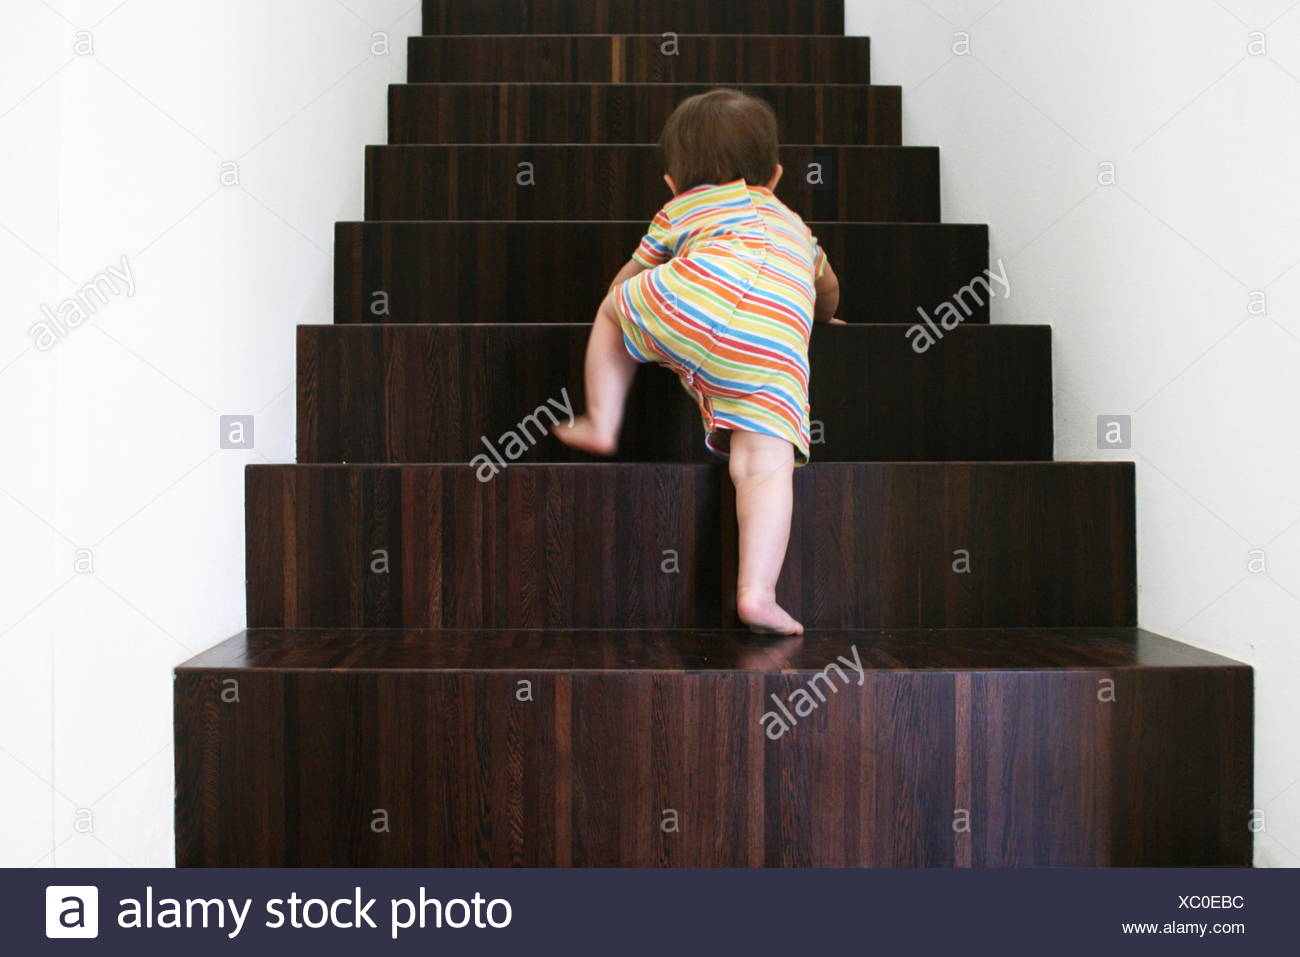 Baby climbing wooden stairs - Stock Image